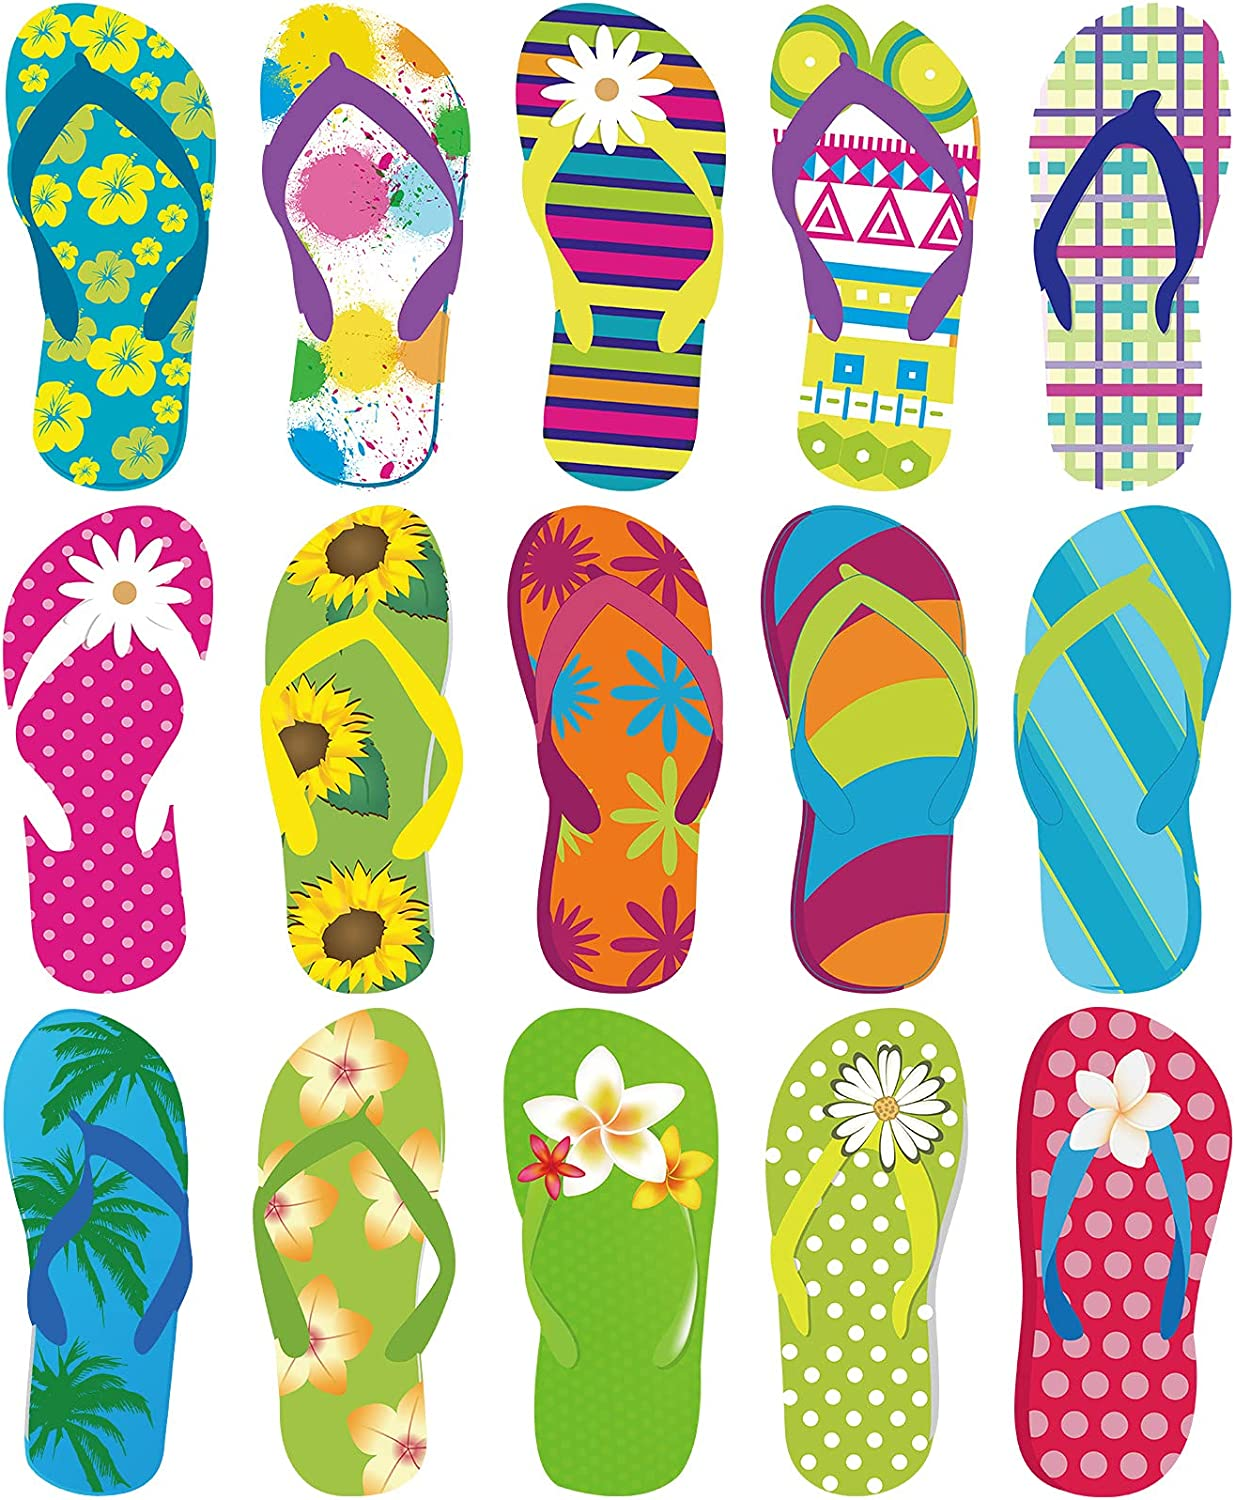 shop 60 Pieces Flip-Flop Accents Cutouts Bu Summer Free shipping anywhere in the nation Colorful